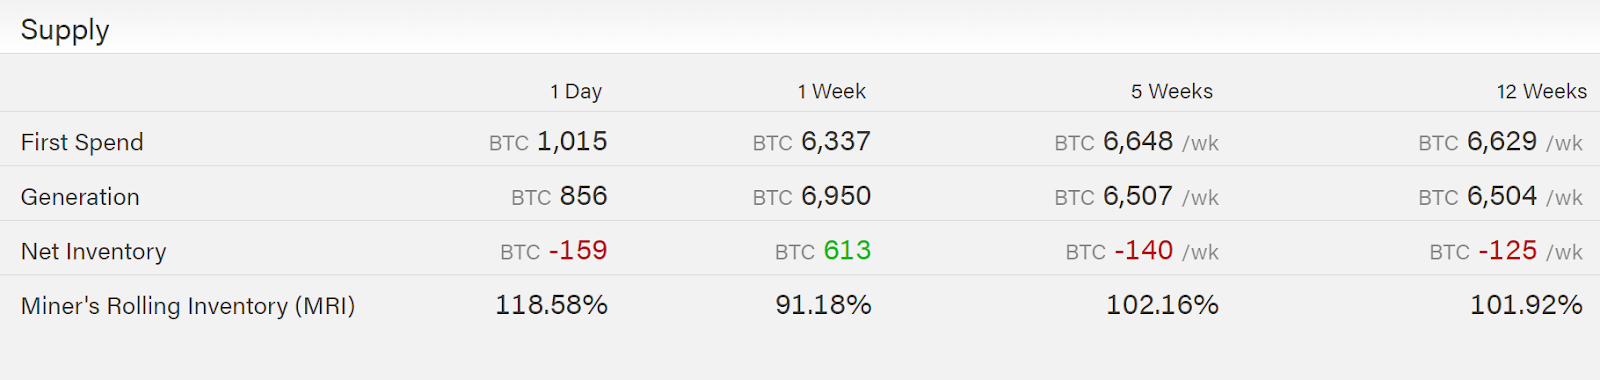 Amount of BTC mined and sold in the last 12 weeks.